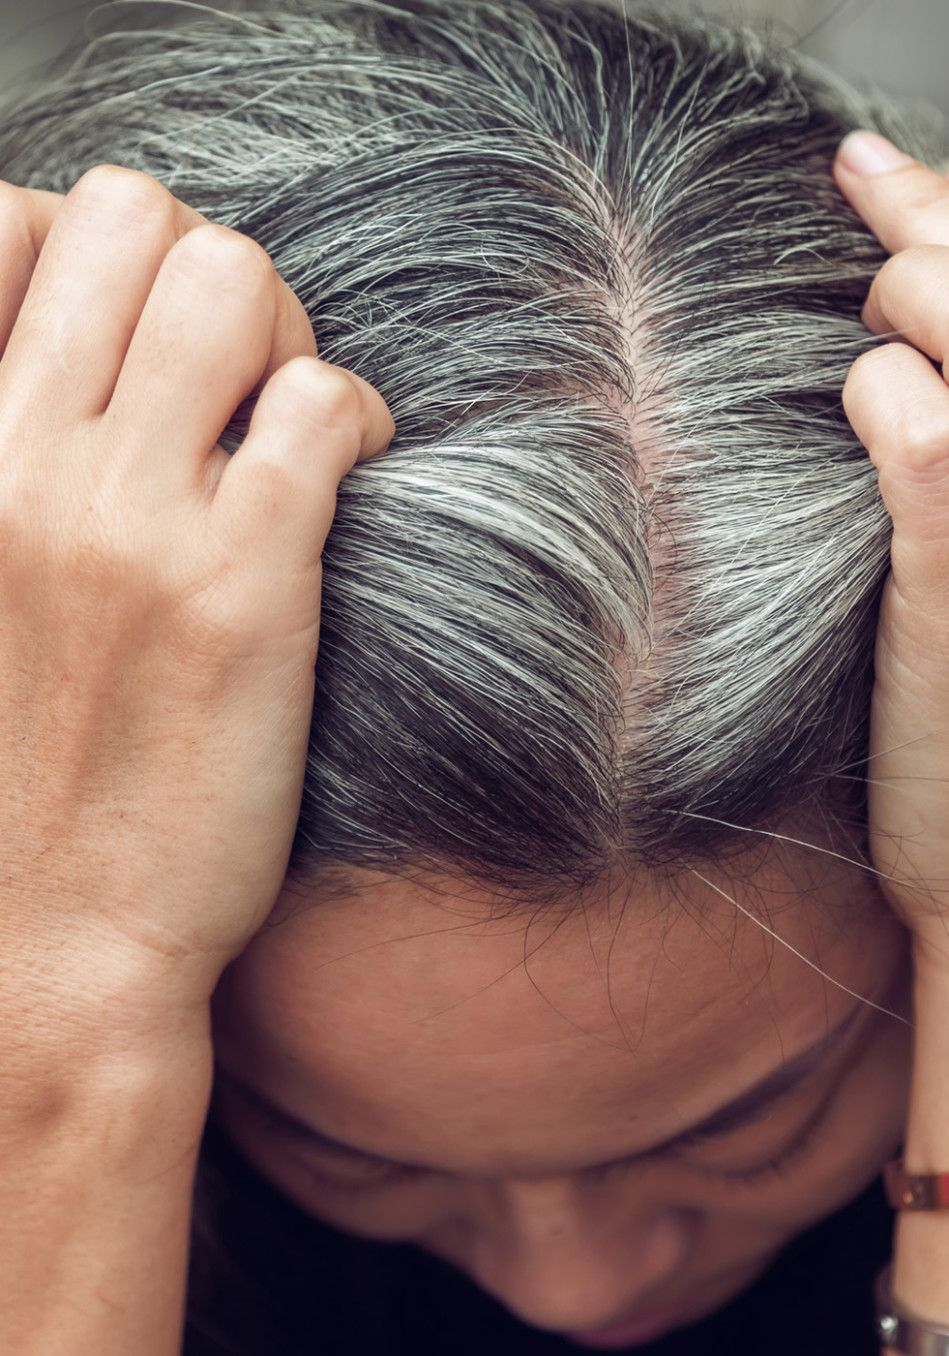 8 Hair Mistakes That Make You Look 10 Years Older